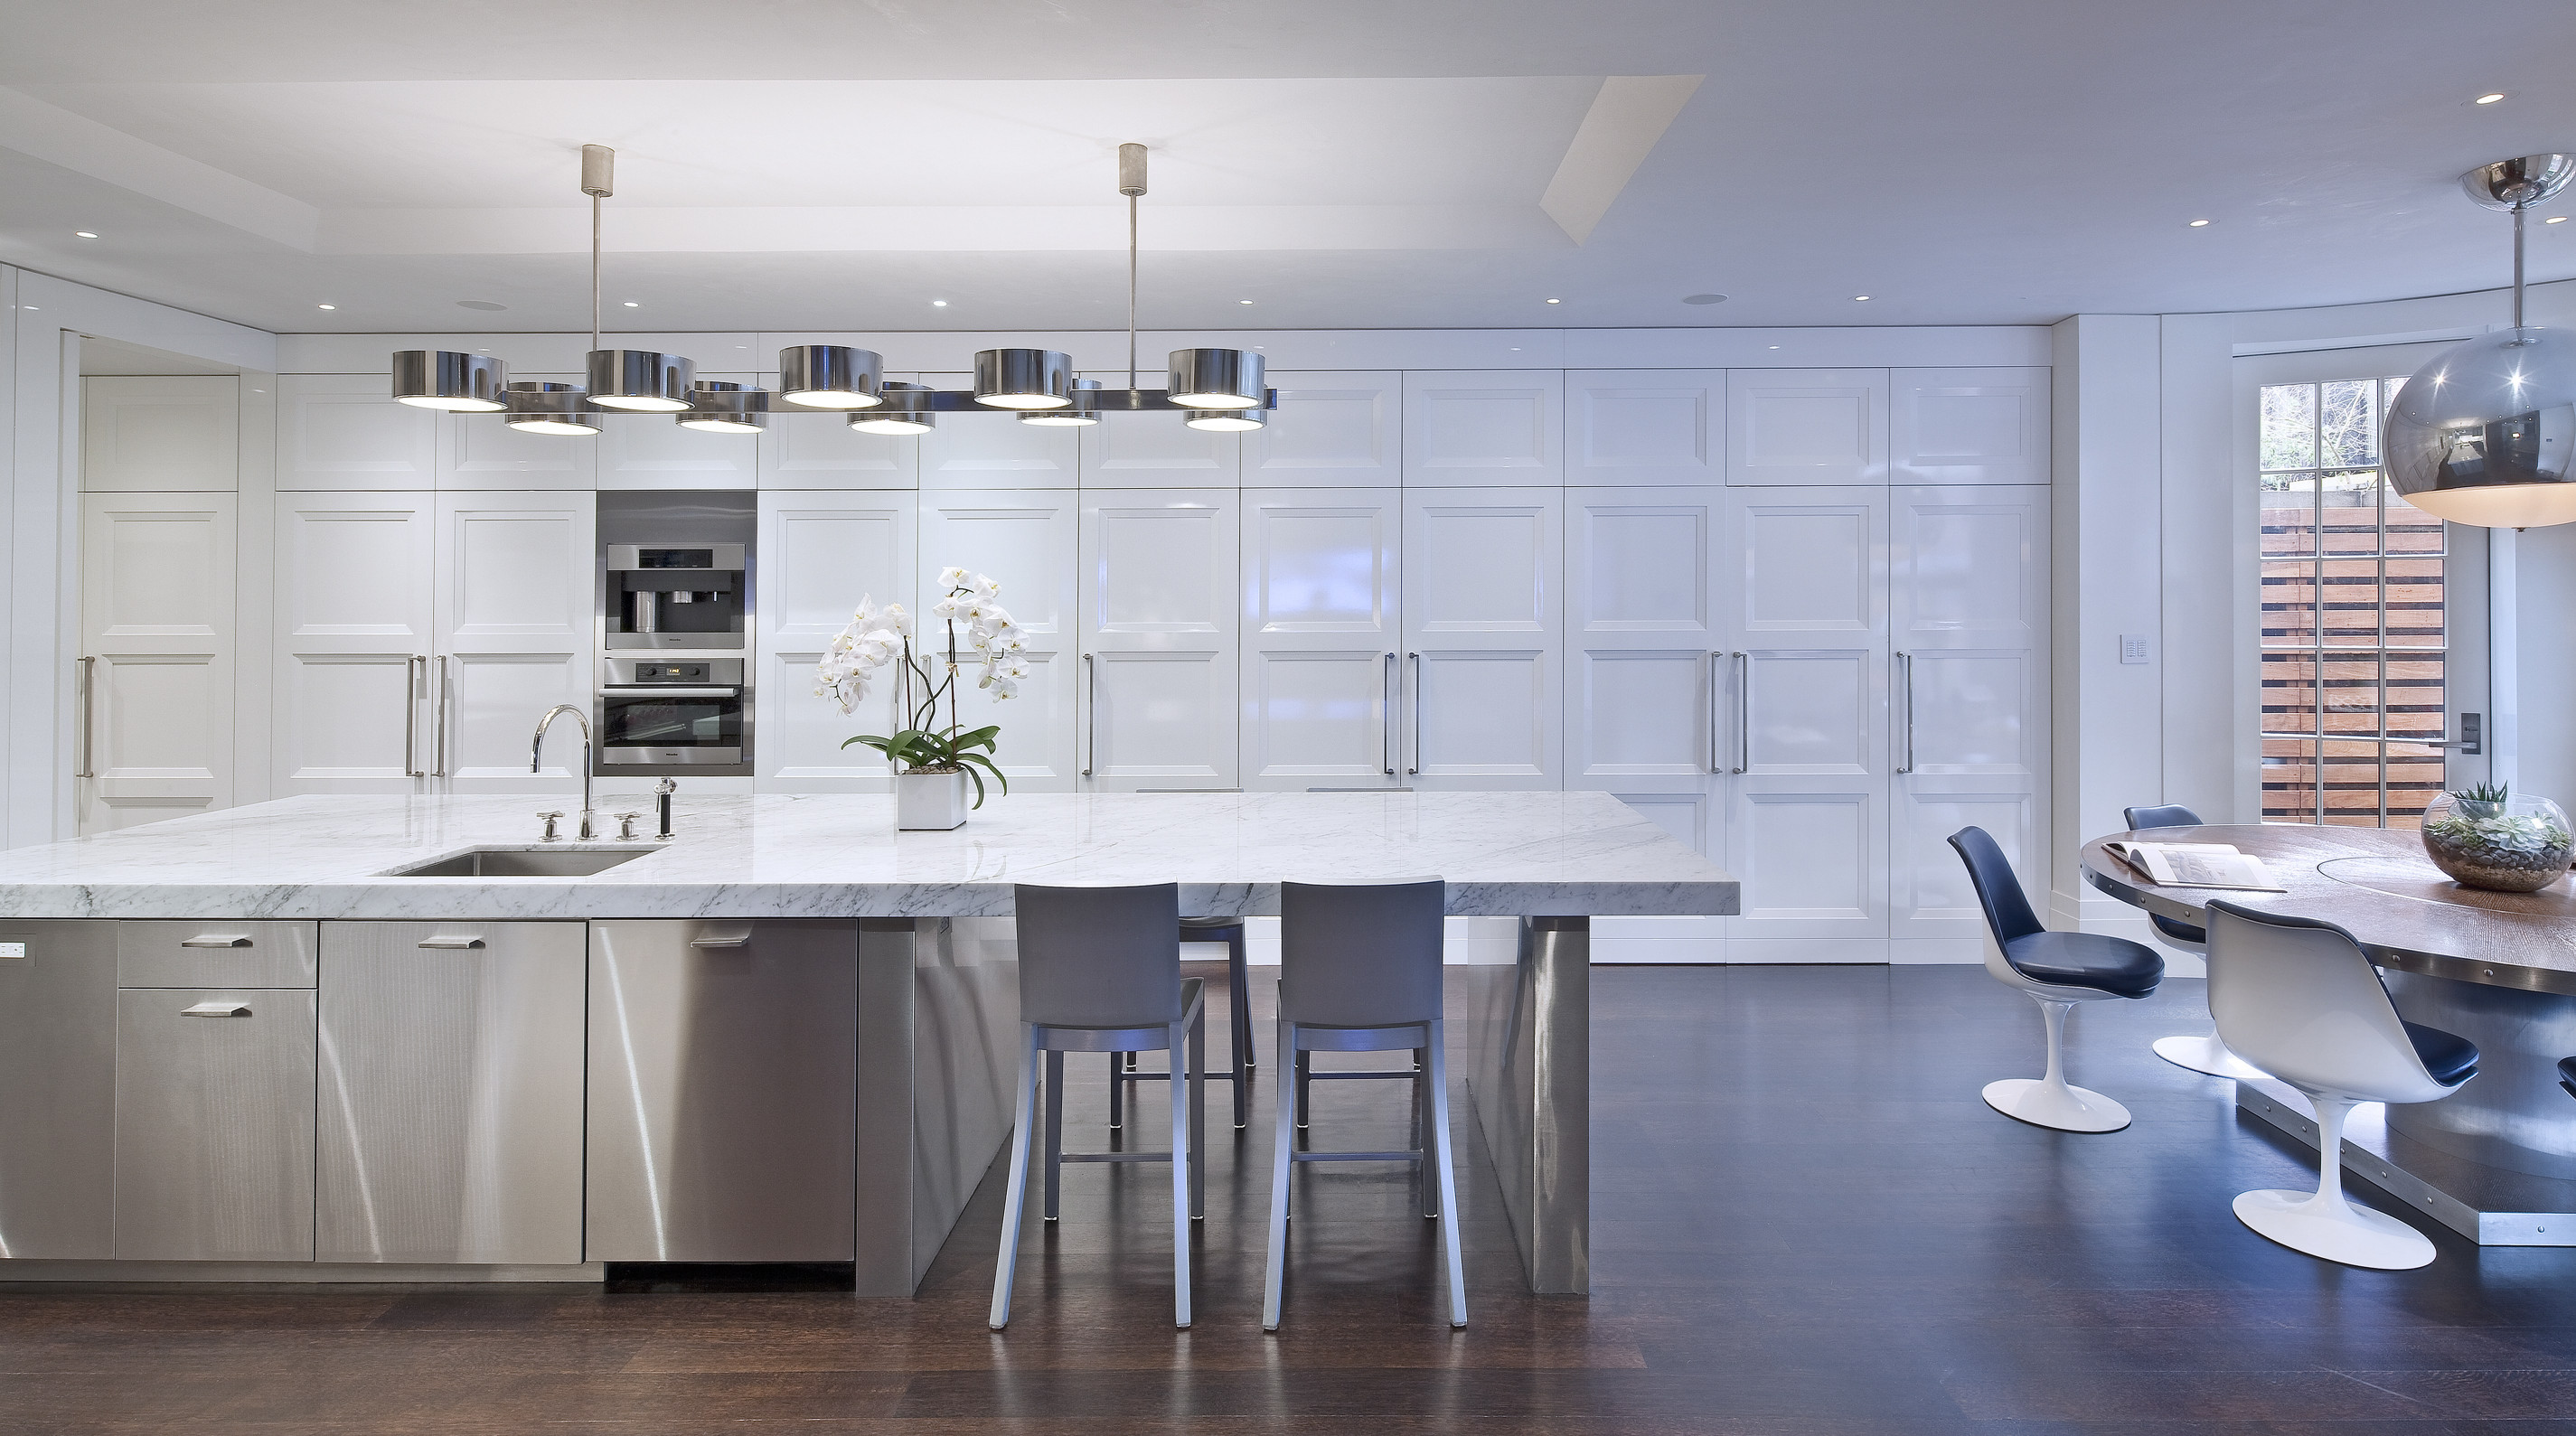 Kitchen Design Pictures  6 Clever Kitchen Design Ideas from St Charles of New York